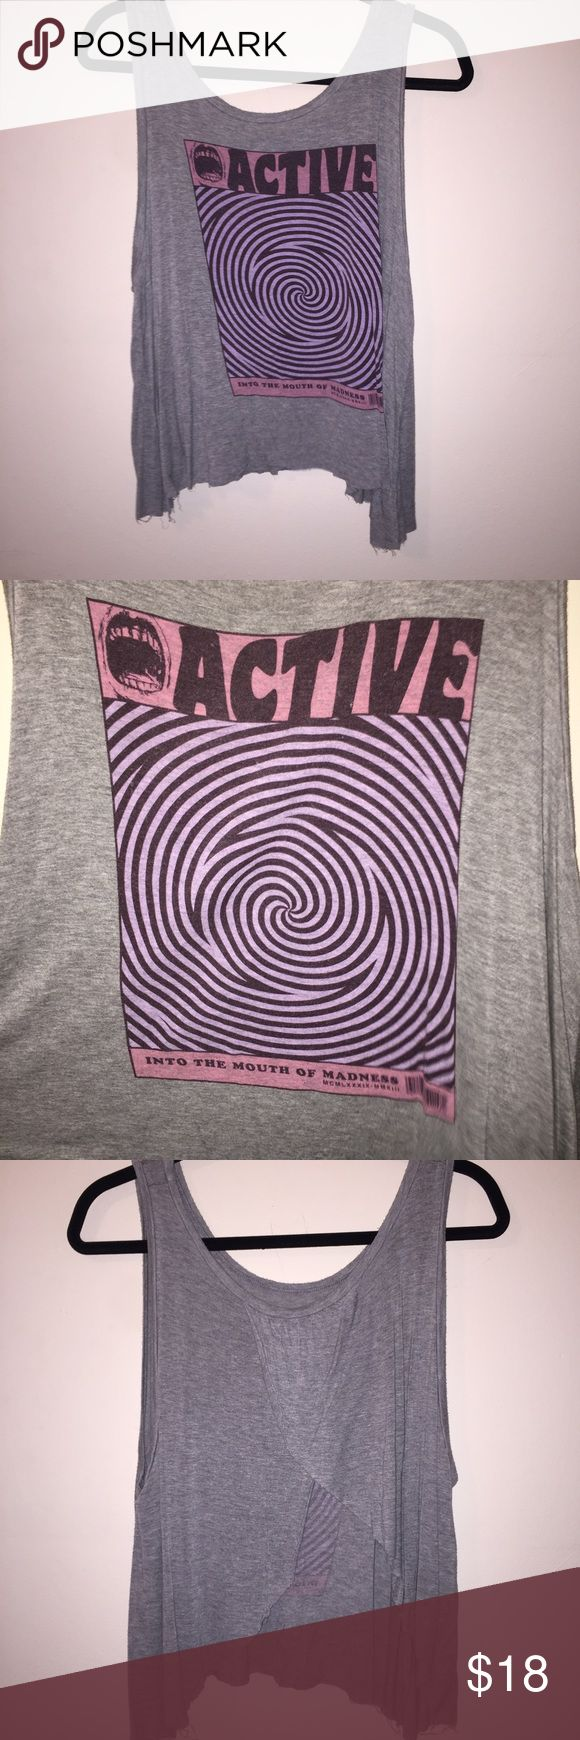 Active Ride Shop graphic tank Grey tank with an open draped back. Great condition! Active Ride Shop Tops Tank Tops